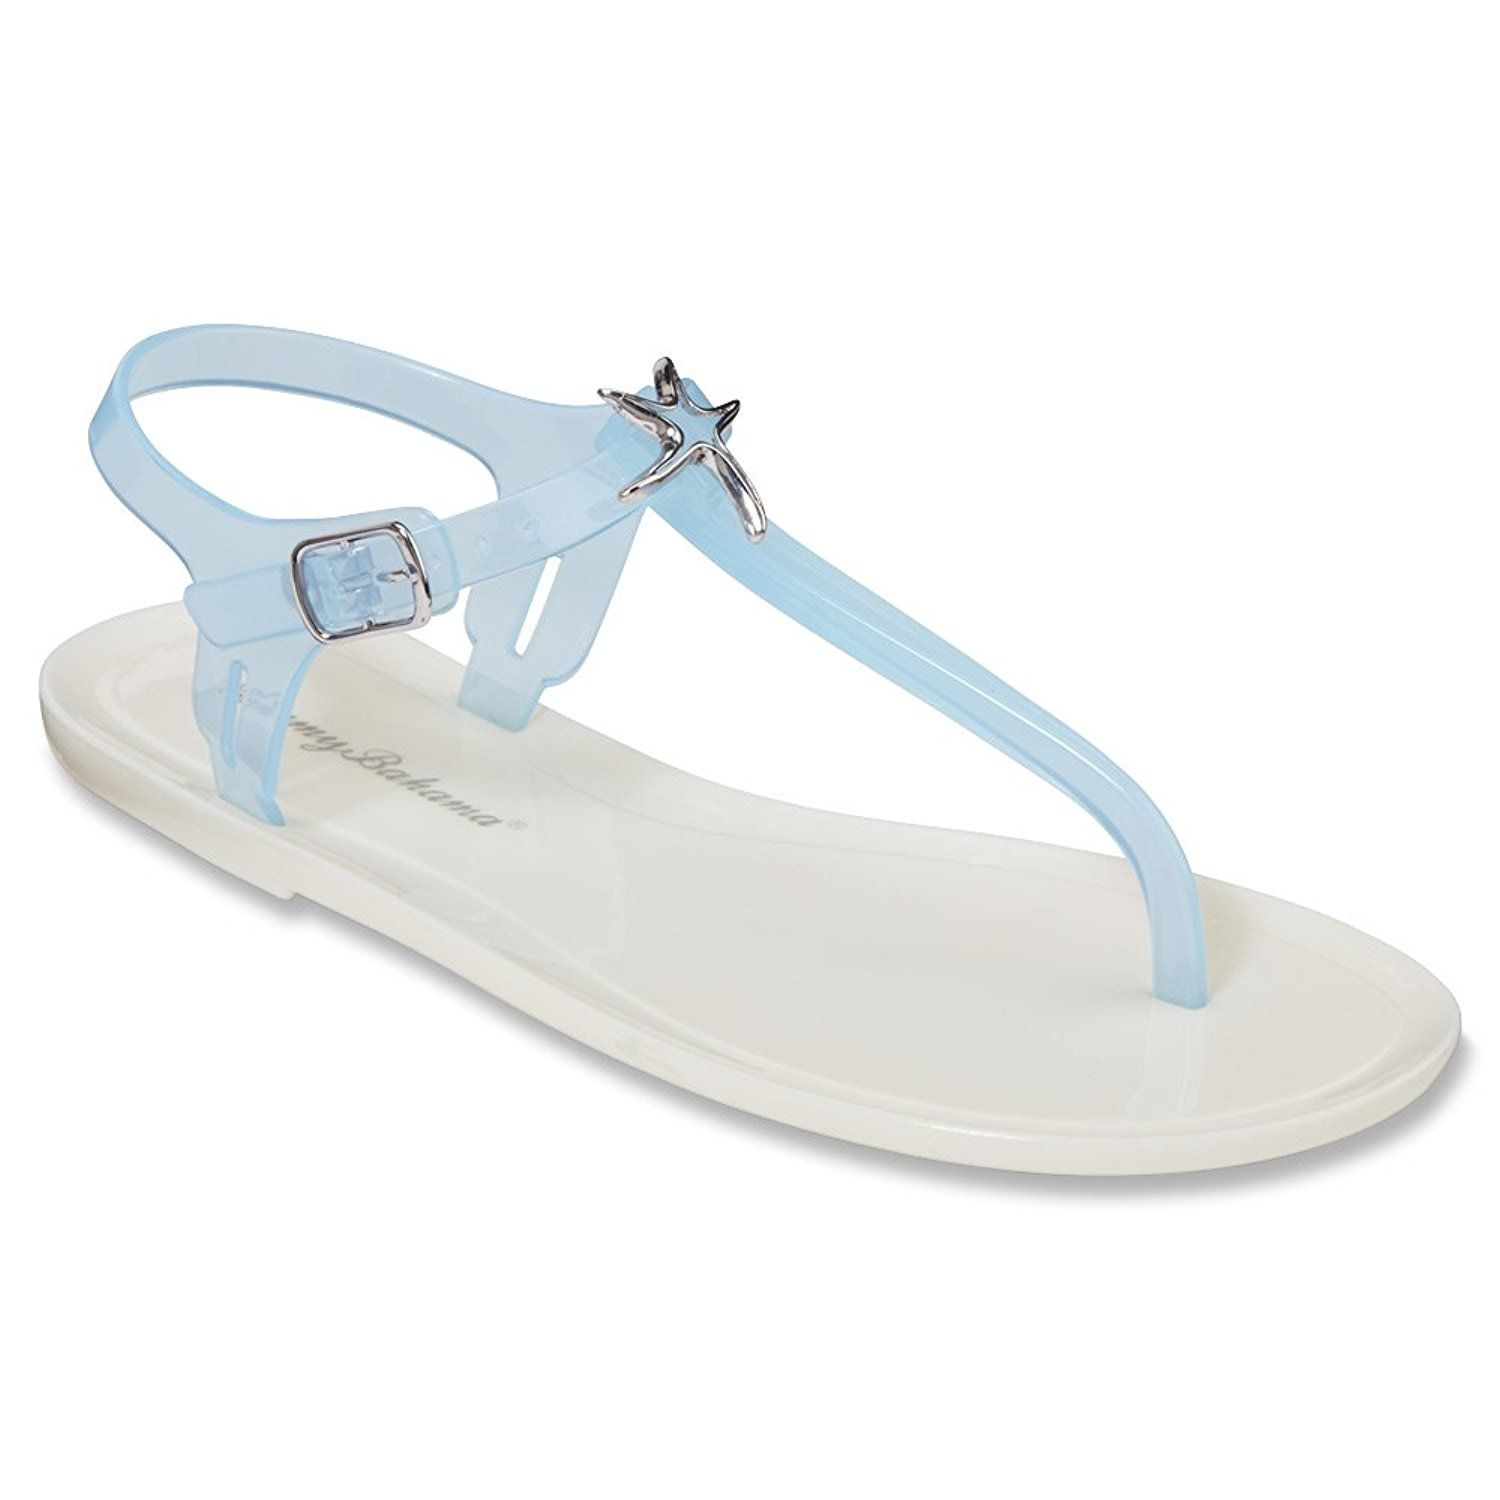 88eed72e4 Tommy Bahama Women s Starfish Jelly Flip Flop     Hurry! Check out this  great item - Jelly Sandals